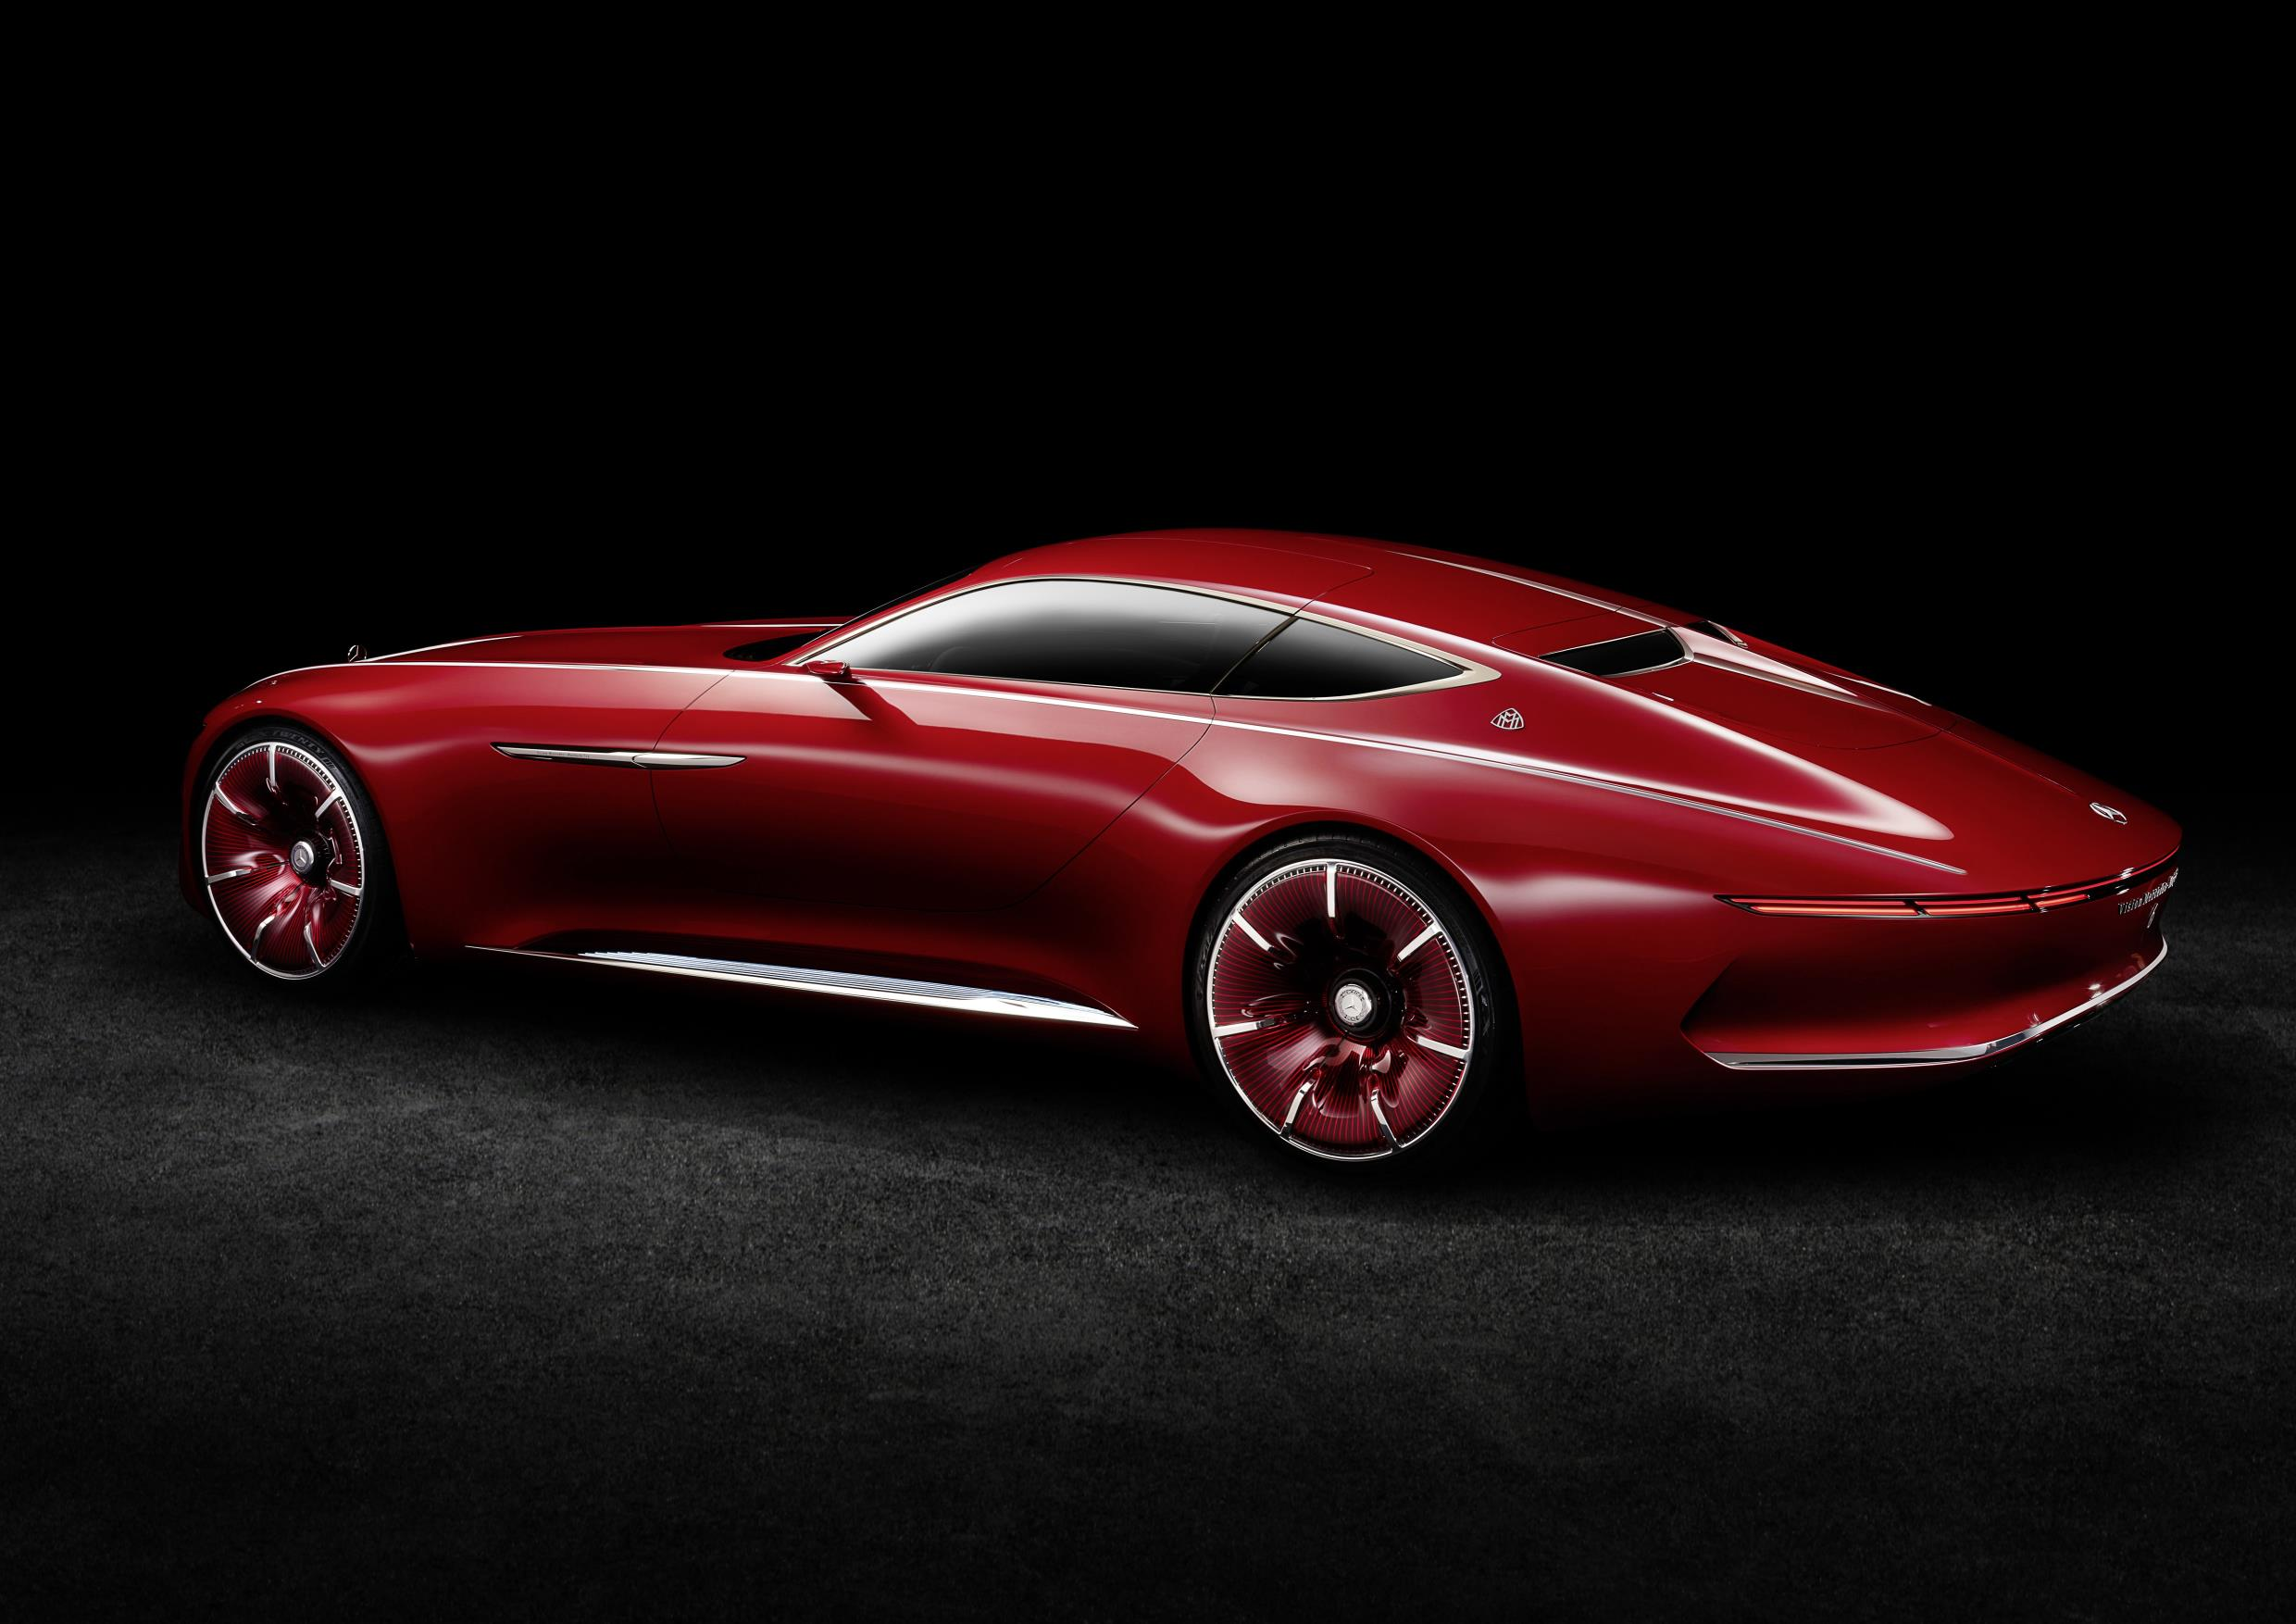 vision mercedes maybach 6 electric vehicle concept is out of this world autoevolution. Black Bedroom Furniture Sets. Home Design Ideas